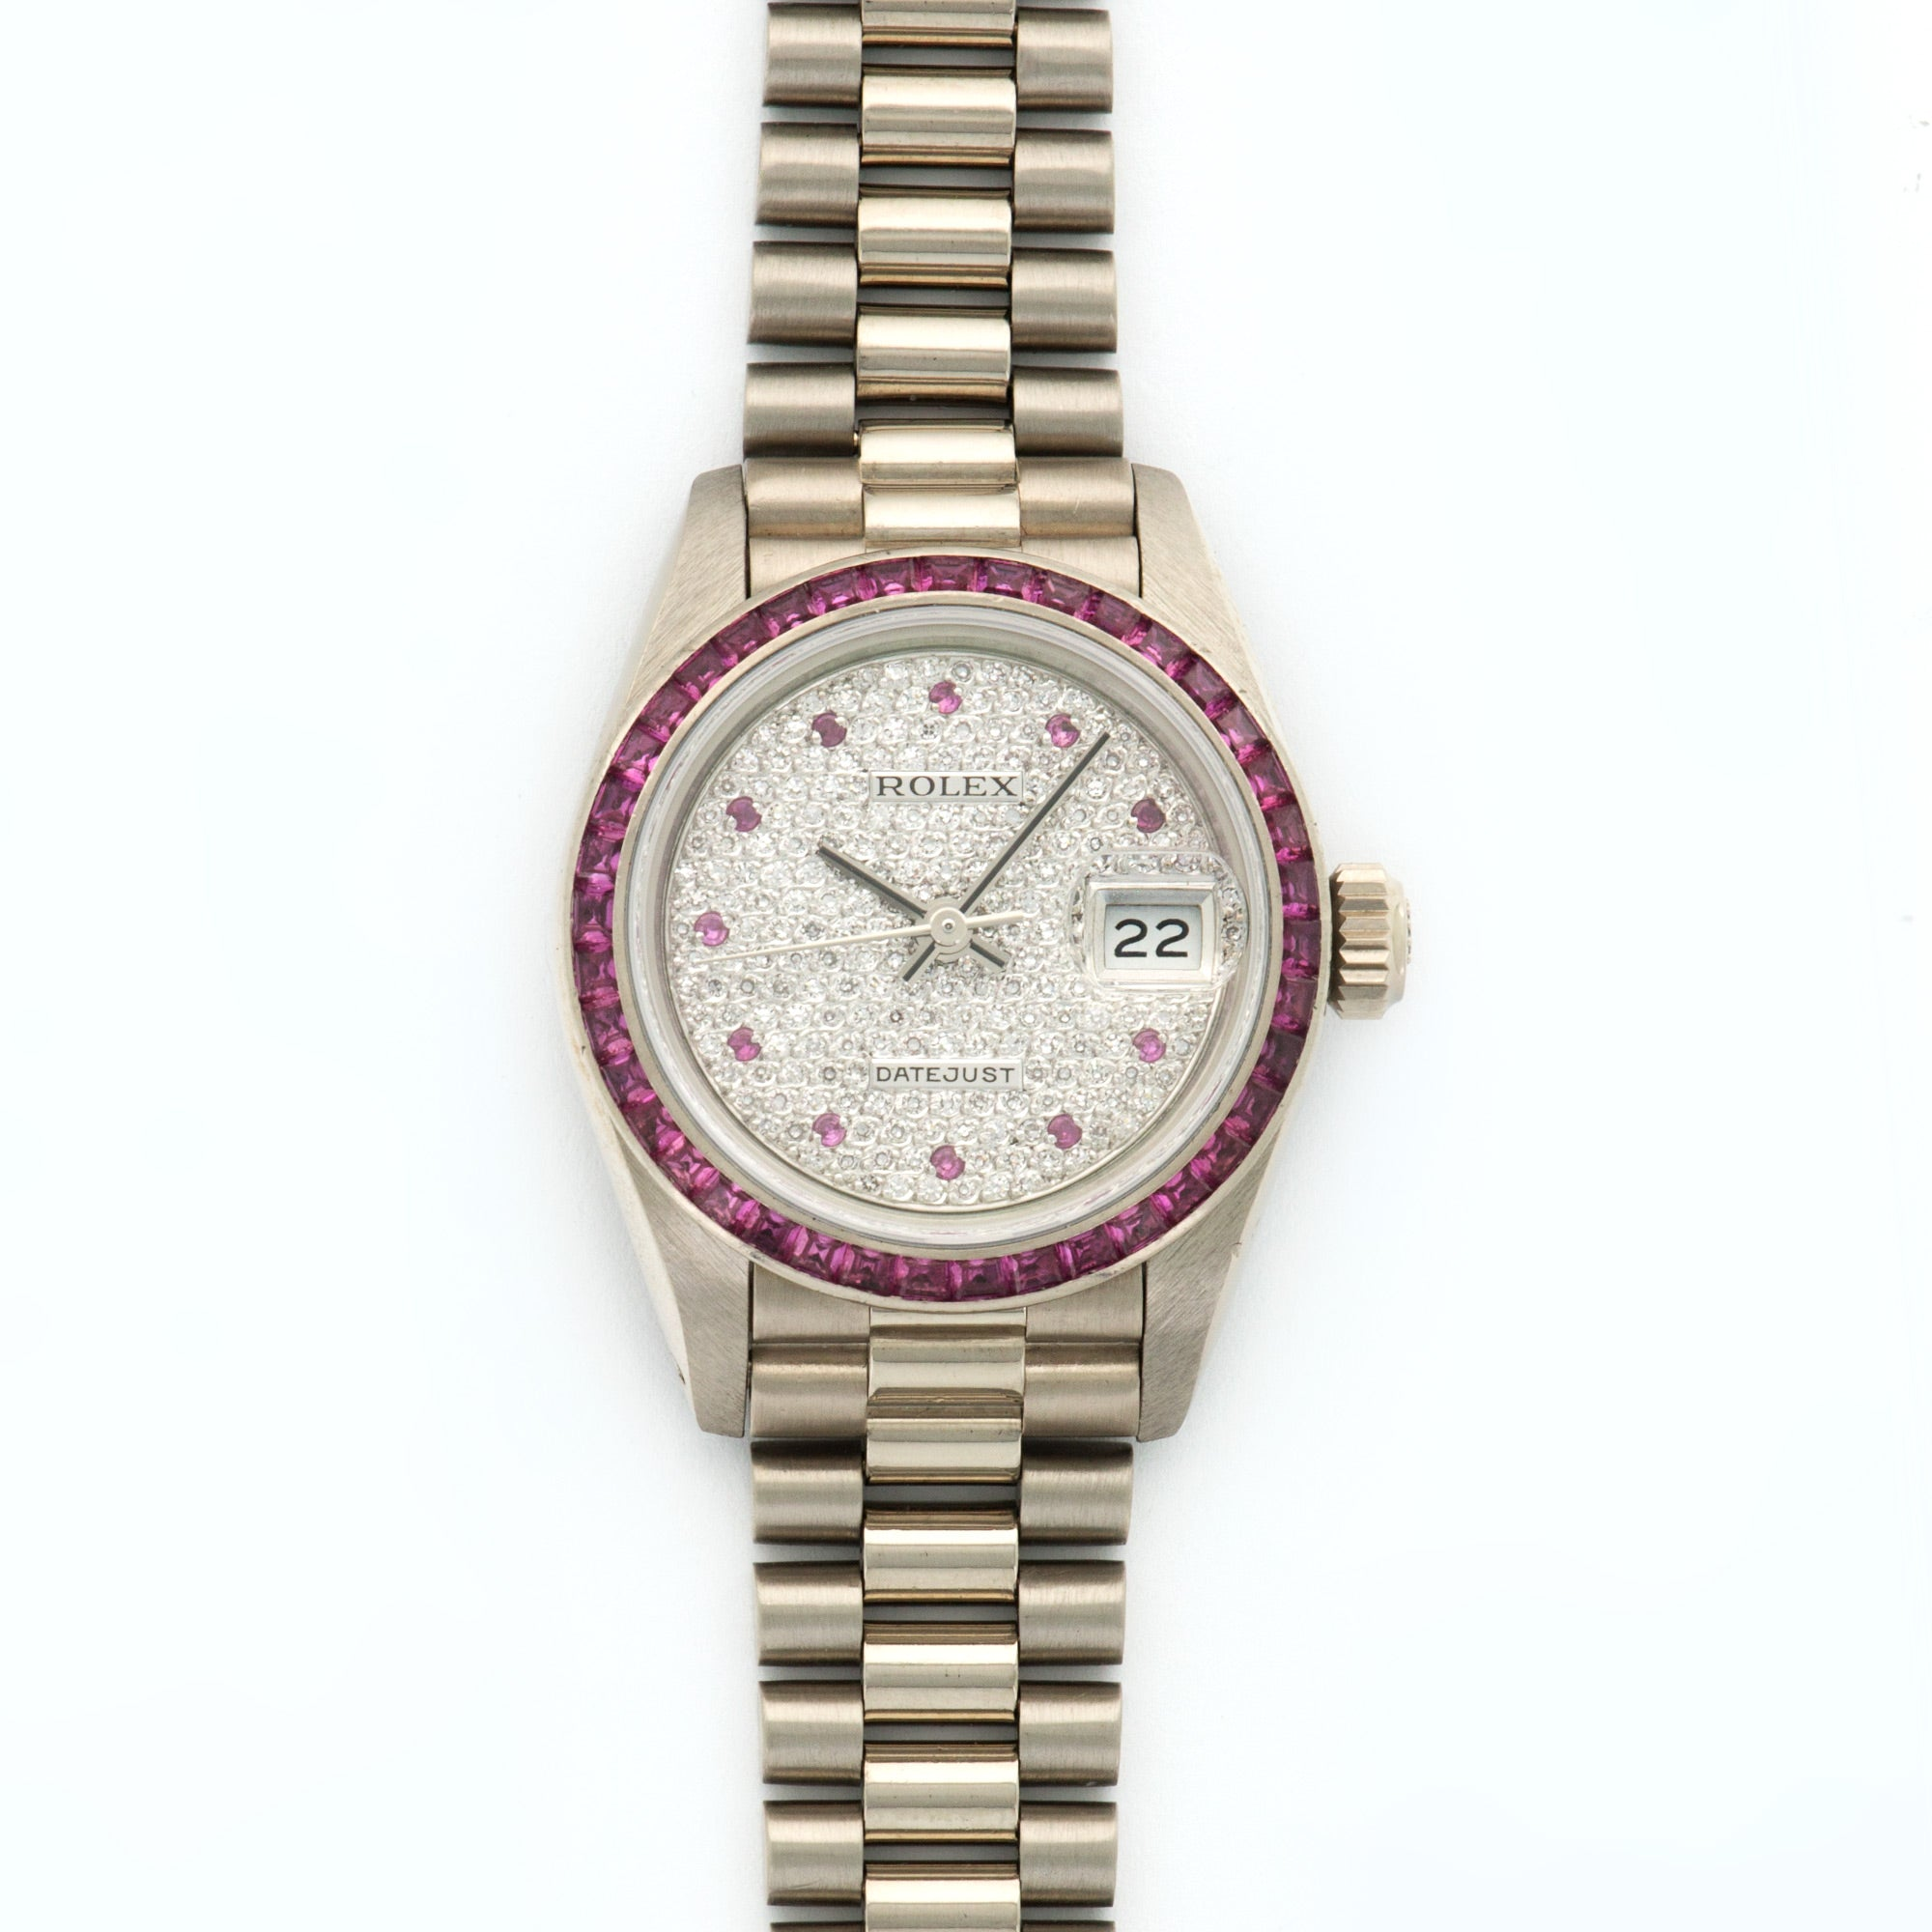 Rolex Datejust 69119 18k WG  Excellent Ladies 18k WG Pave Diamond with Pink Sapphire Markers 26mm Automatic 1980s White Gold (6 3/4) Serv. Papers